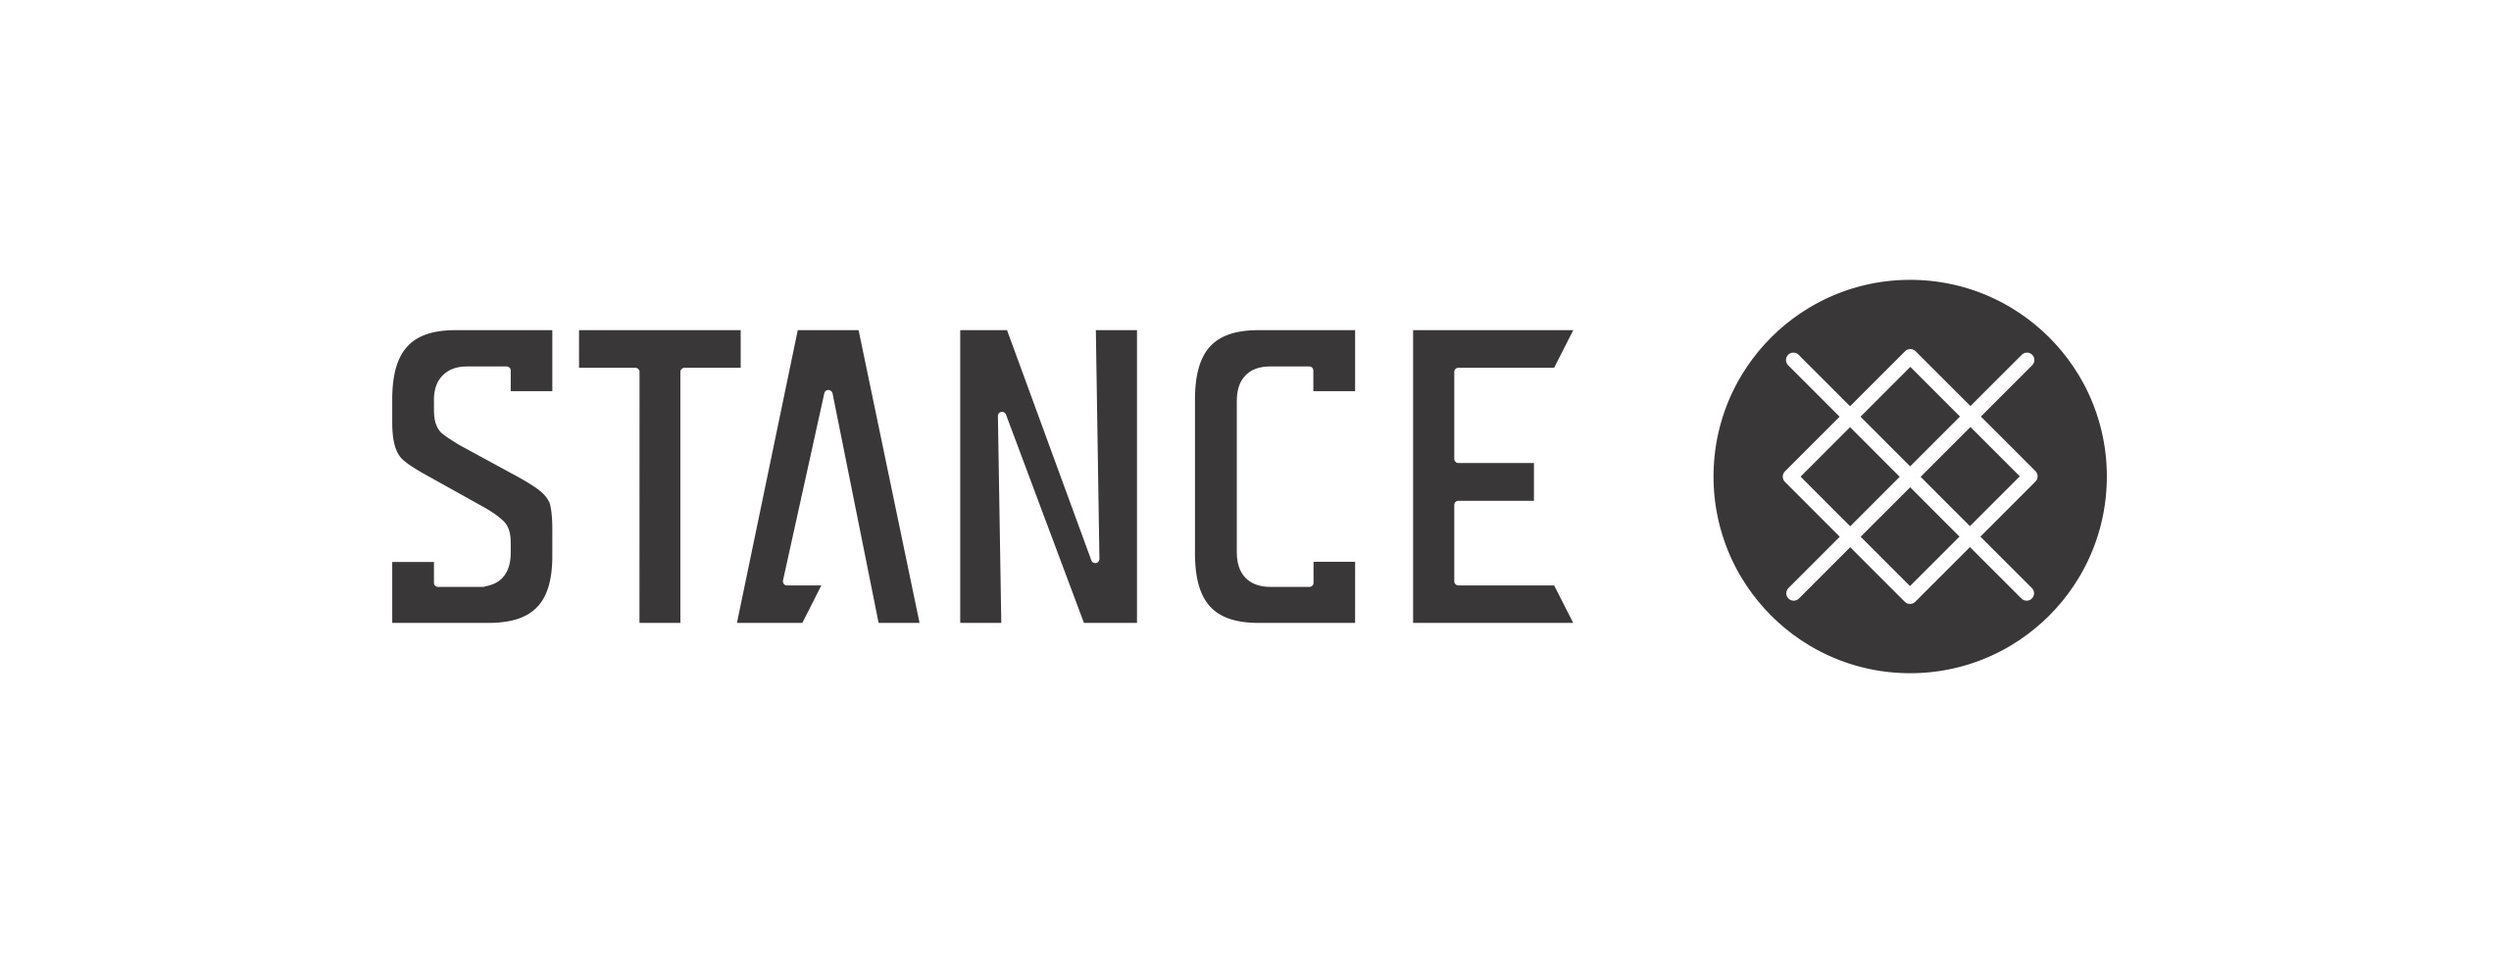 STANCE_LOGO_BLACK copy.jpg